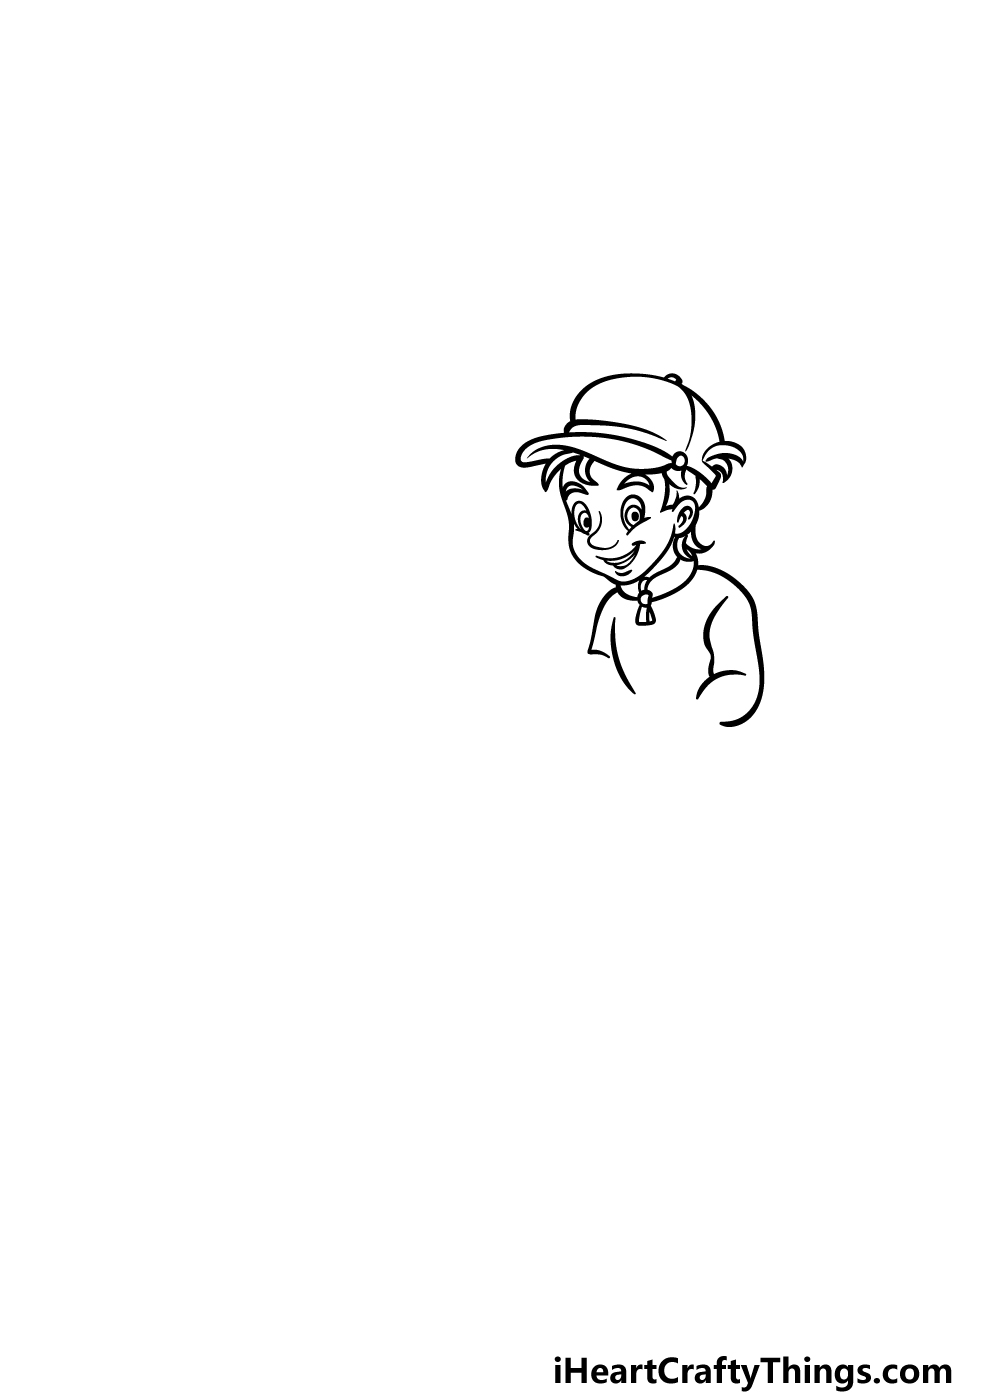 how to draw fishing step 1